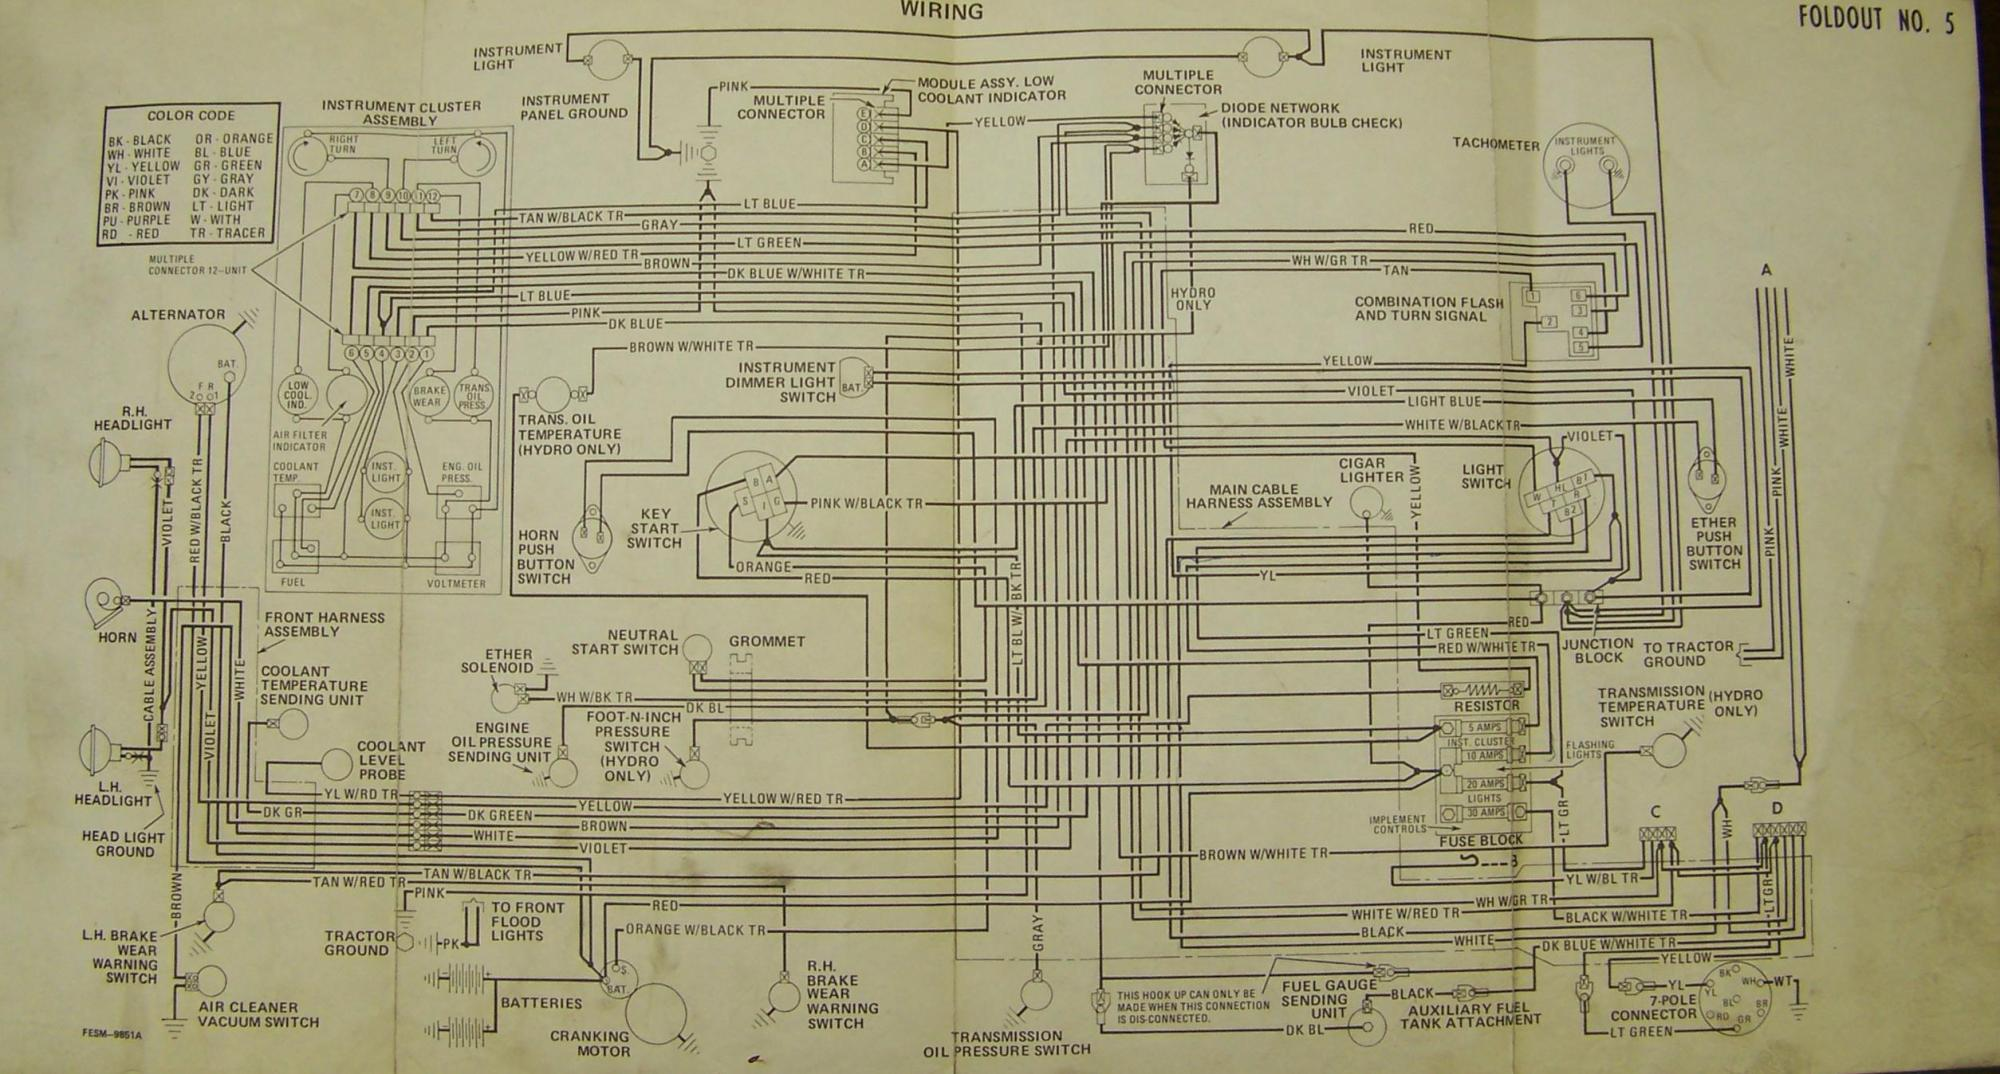 hight resolution of 1486 electrical general ih red power magazine communitytractor wiring diagram for lights 12